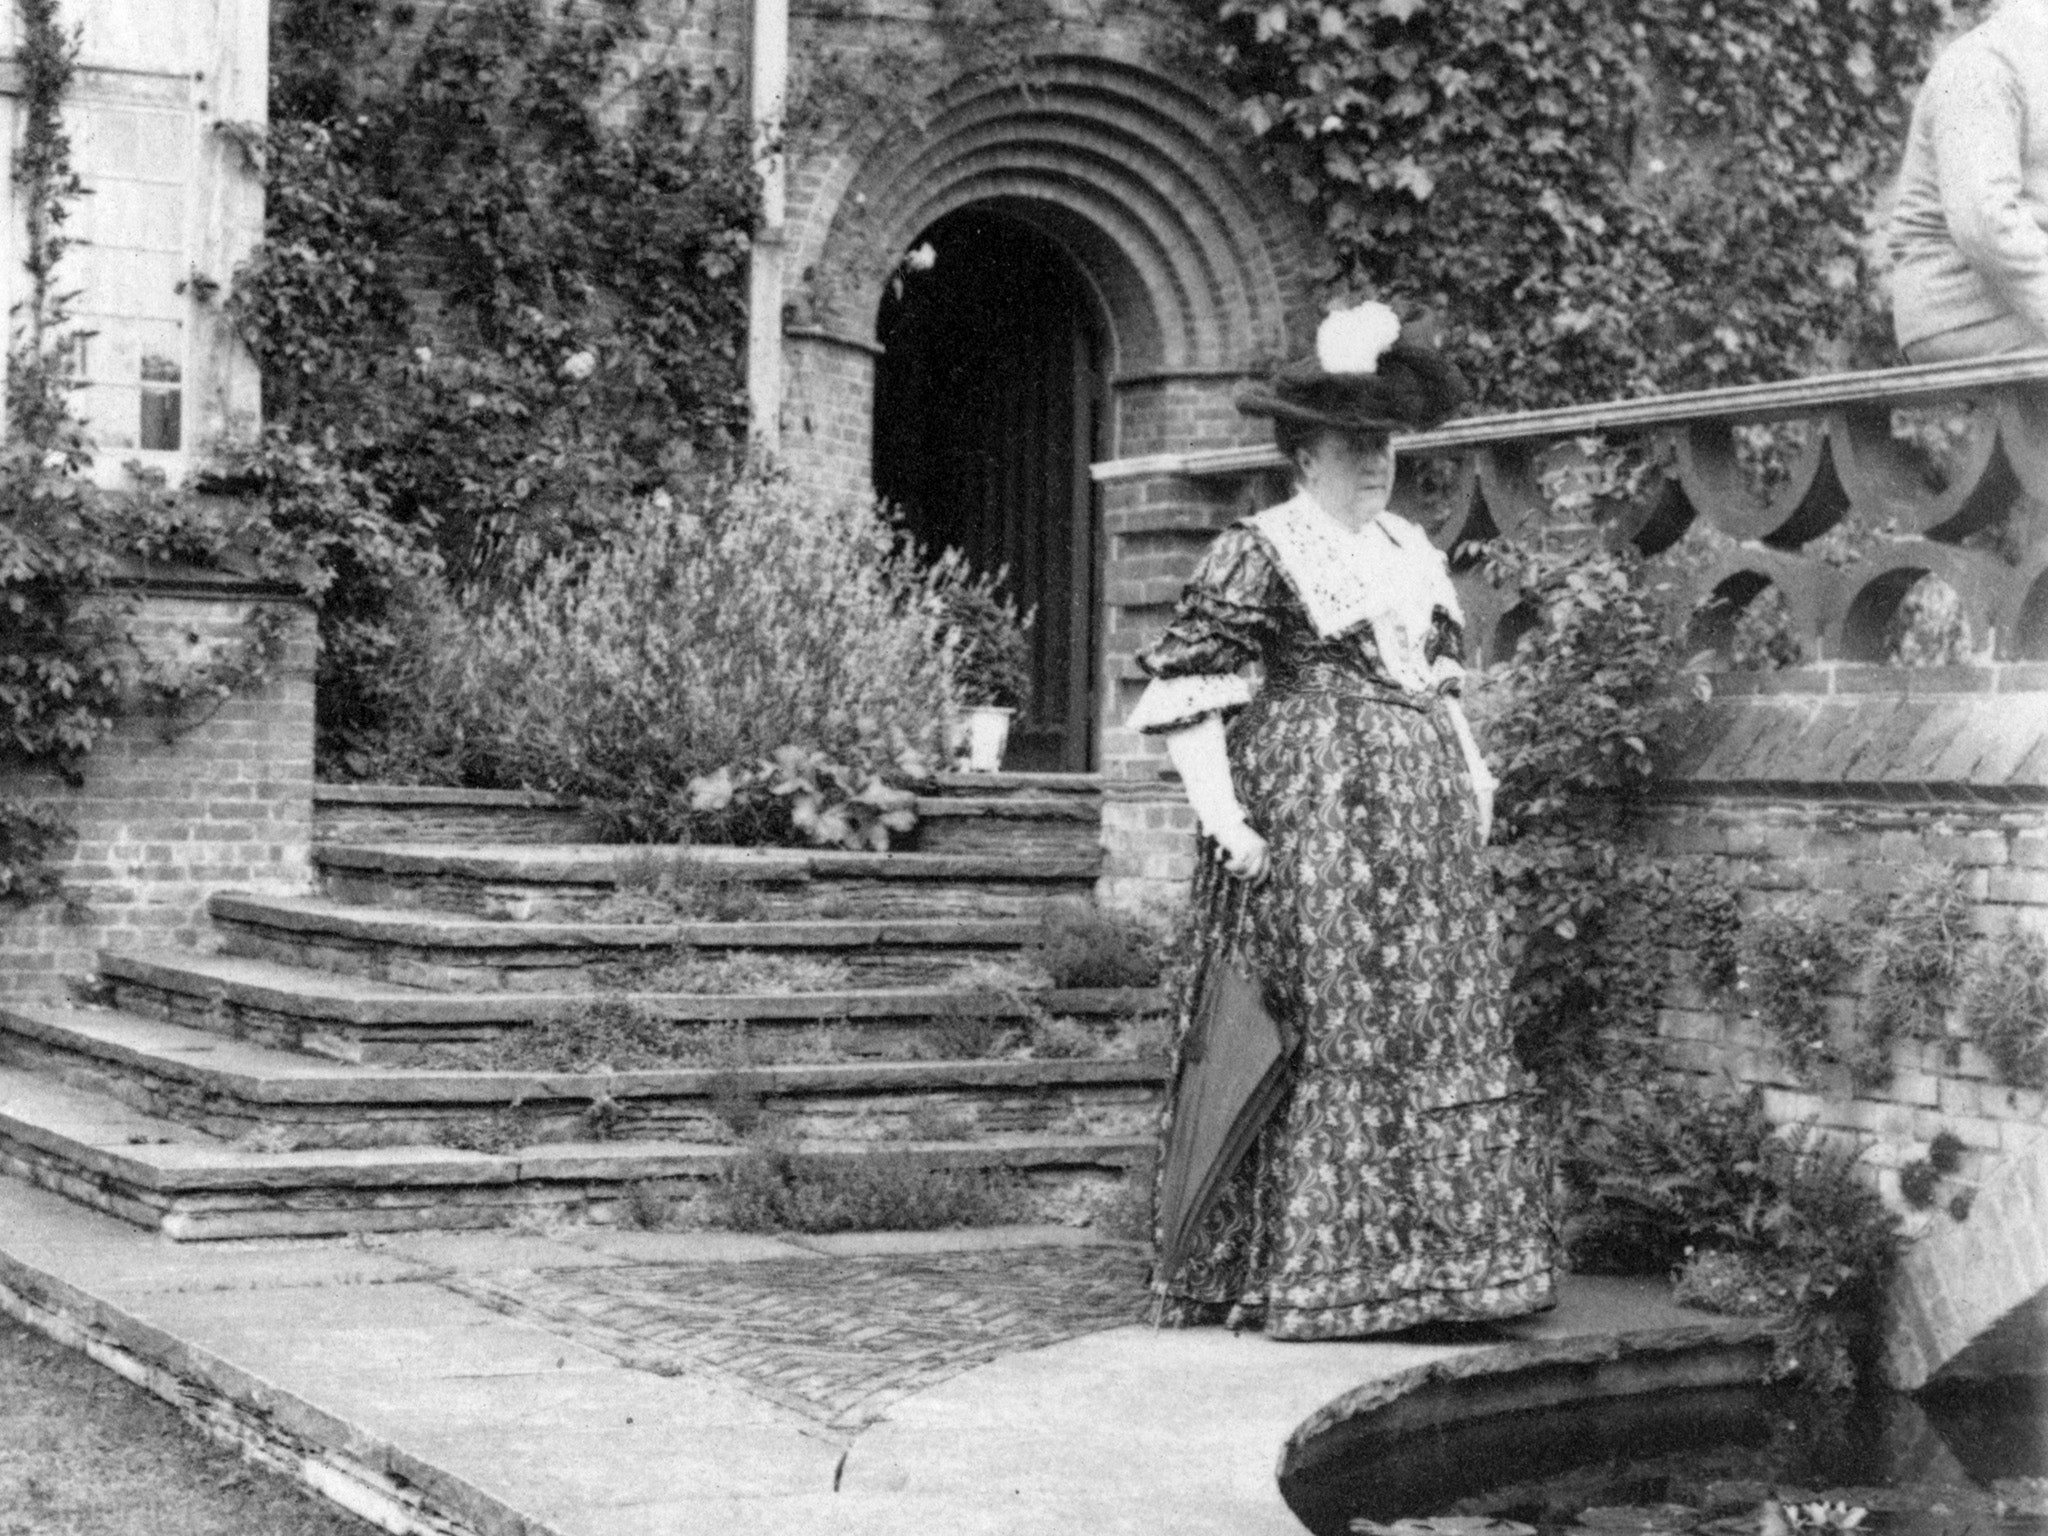 Gertrude Jekyll: Inspirational wisdom from the Victorian garden designer and renowned horticulturalist